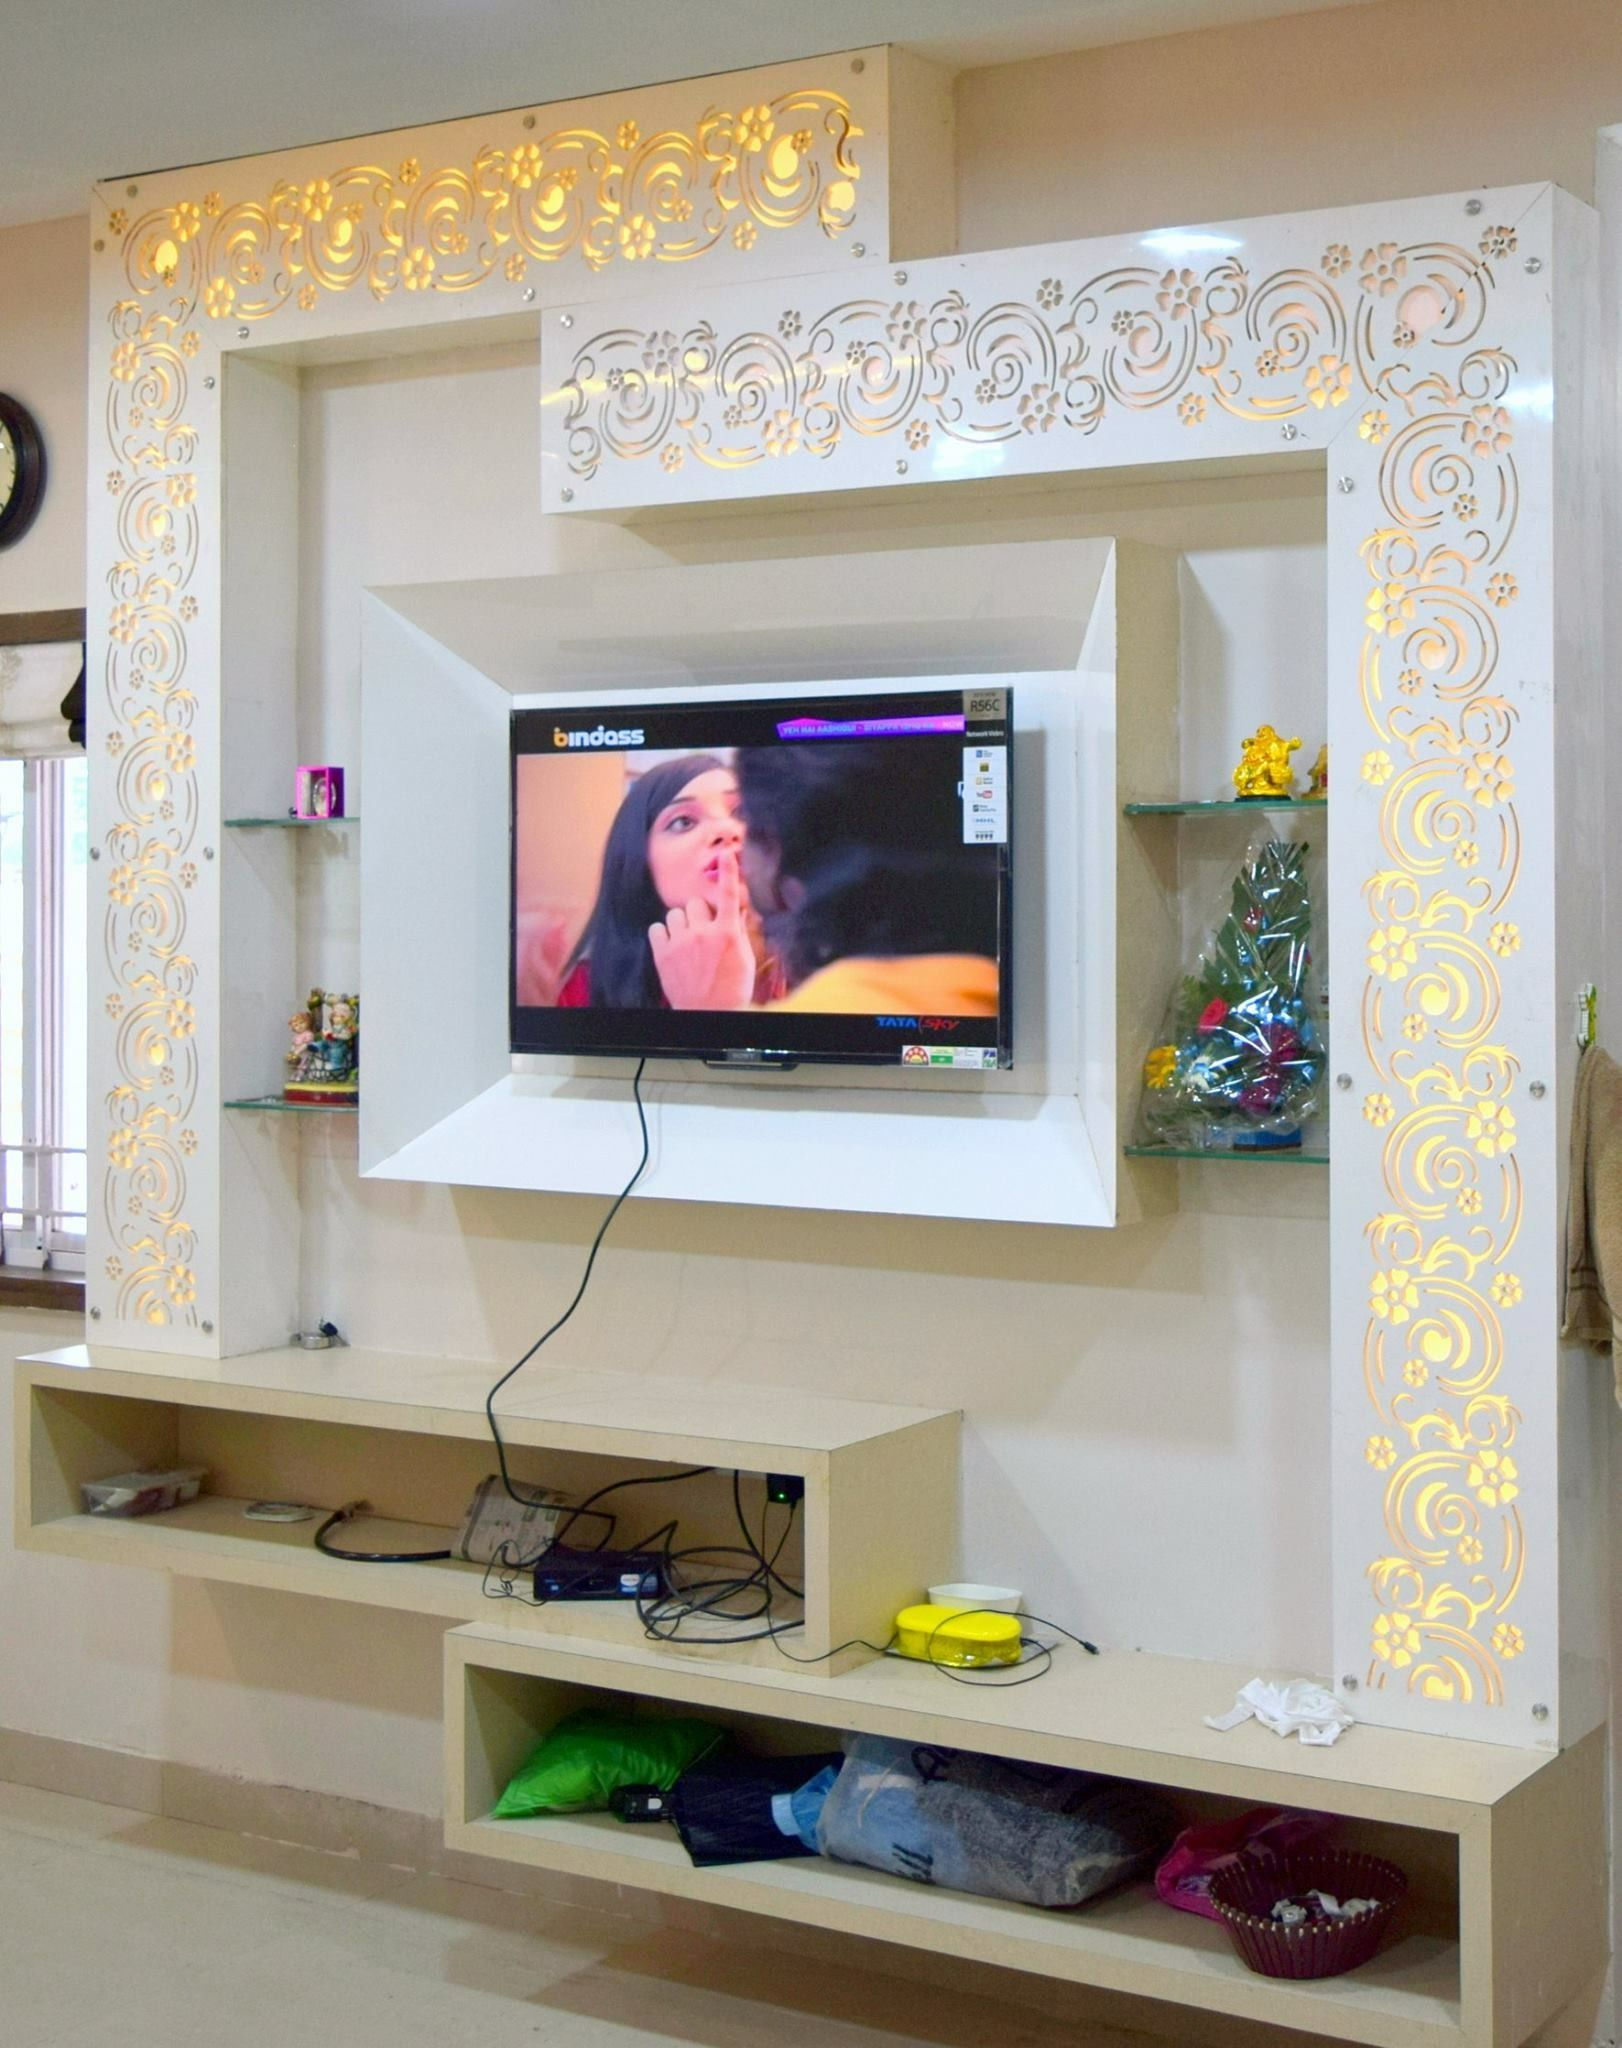 Tv Wall Units, Tv Units, Tv Unit Design, Ceiling Design, Lcd Wall Design,  Bedroom Interiors, House Interiors, Urban Kitchen, Tv Panel